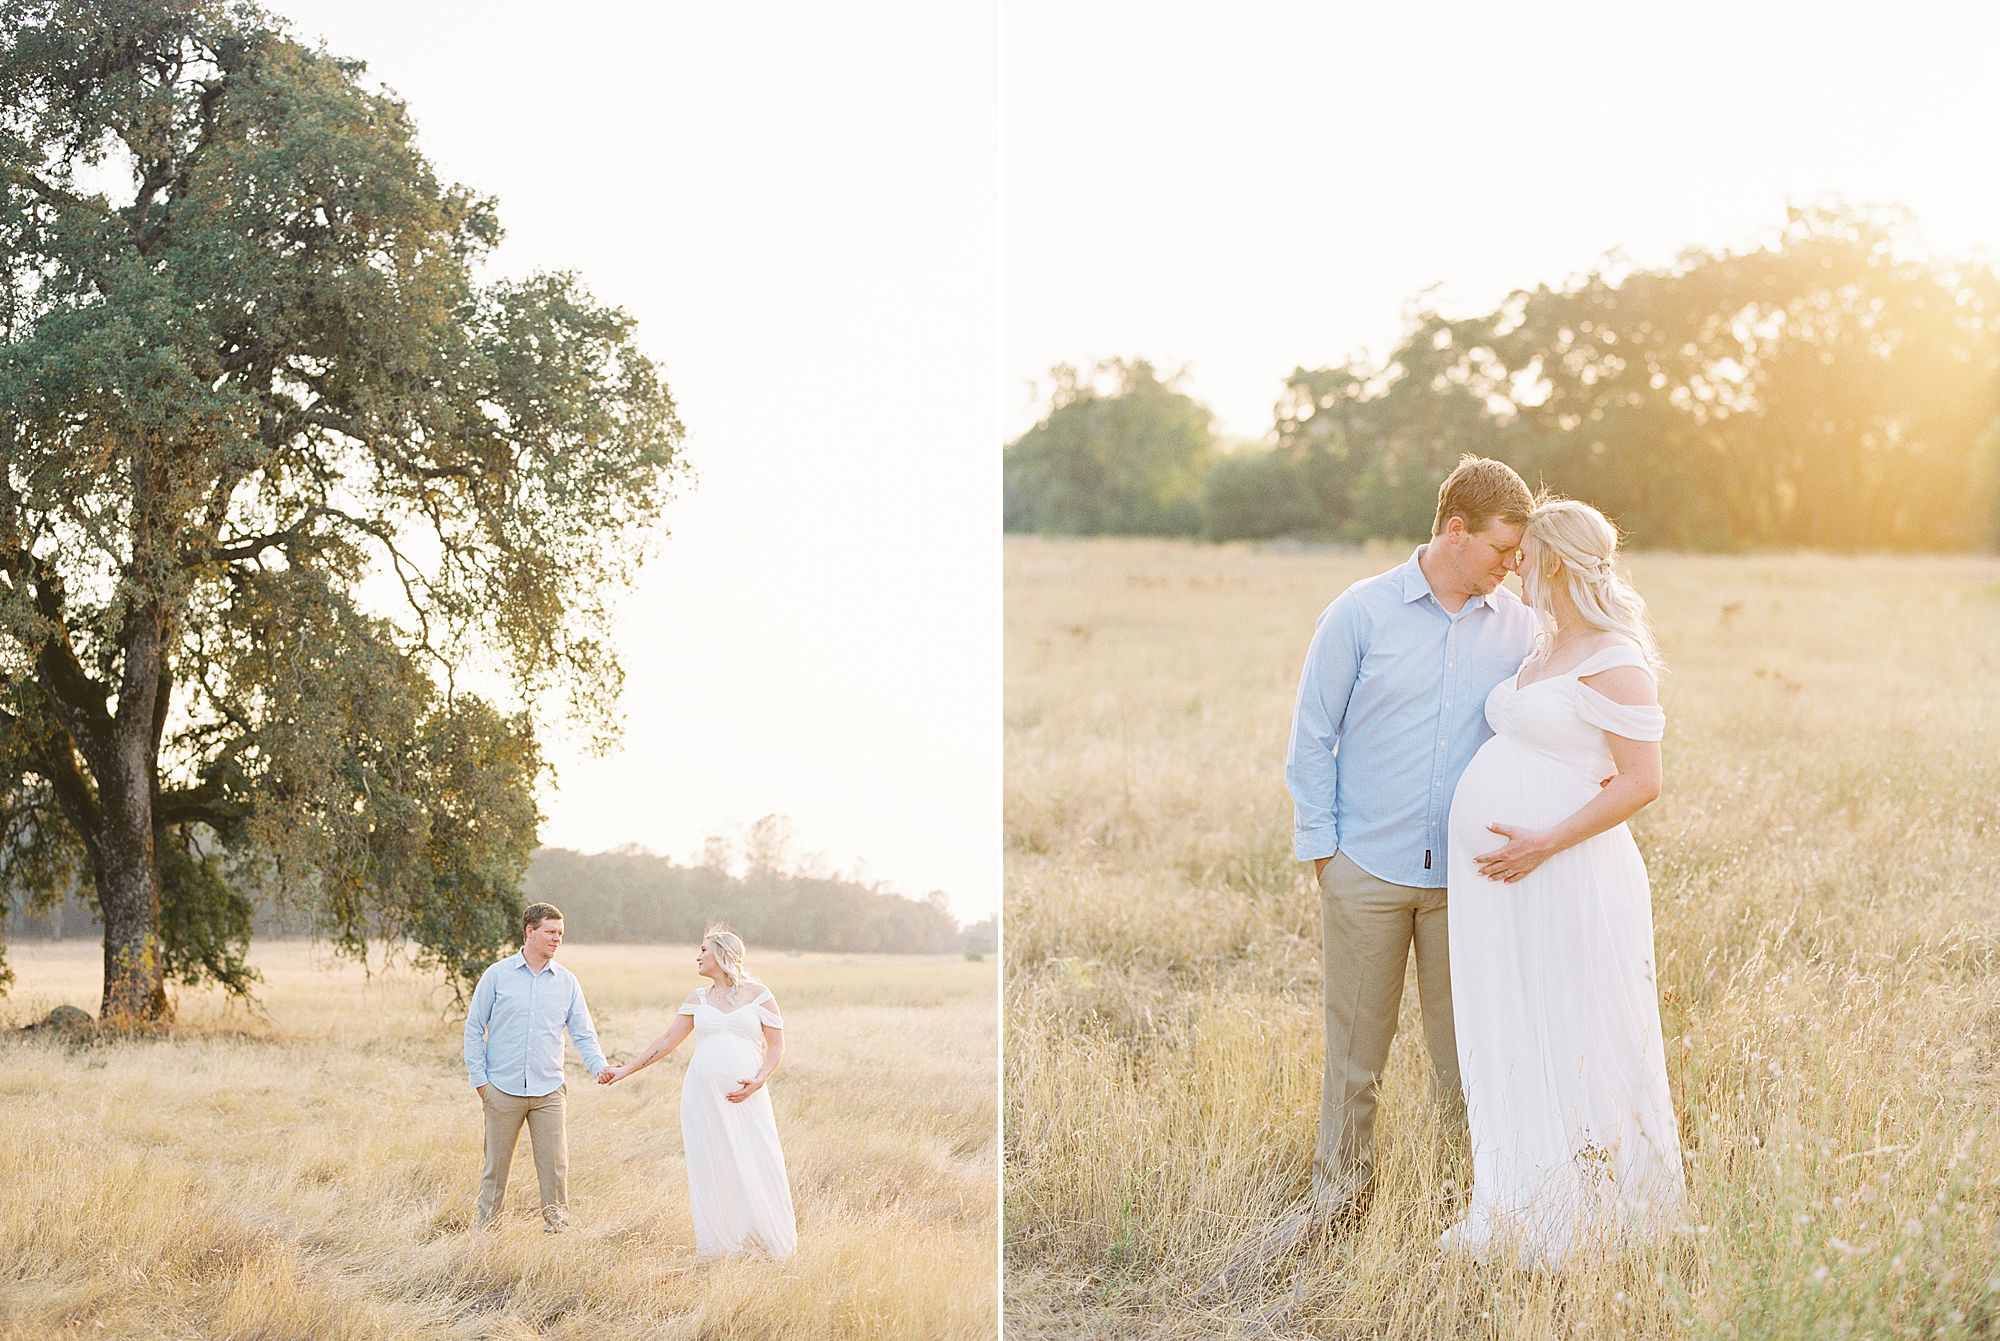 Golden Sacramento Maternity - Hannah and Connor - Ashley Baumgartner - Sacramento Maternity Photographer_0010.jpg